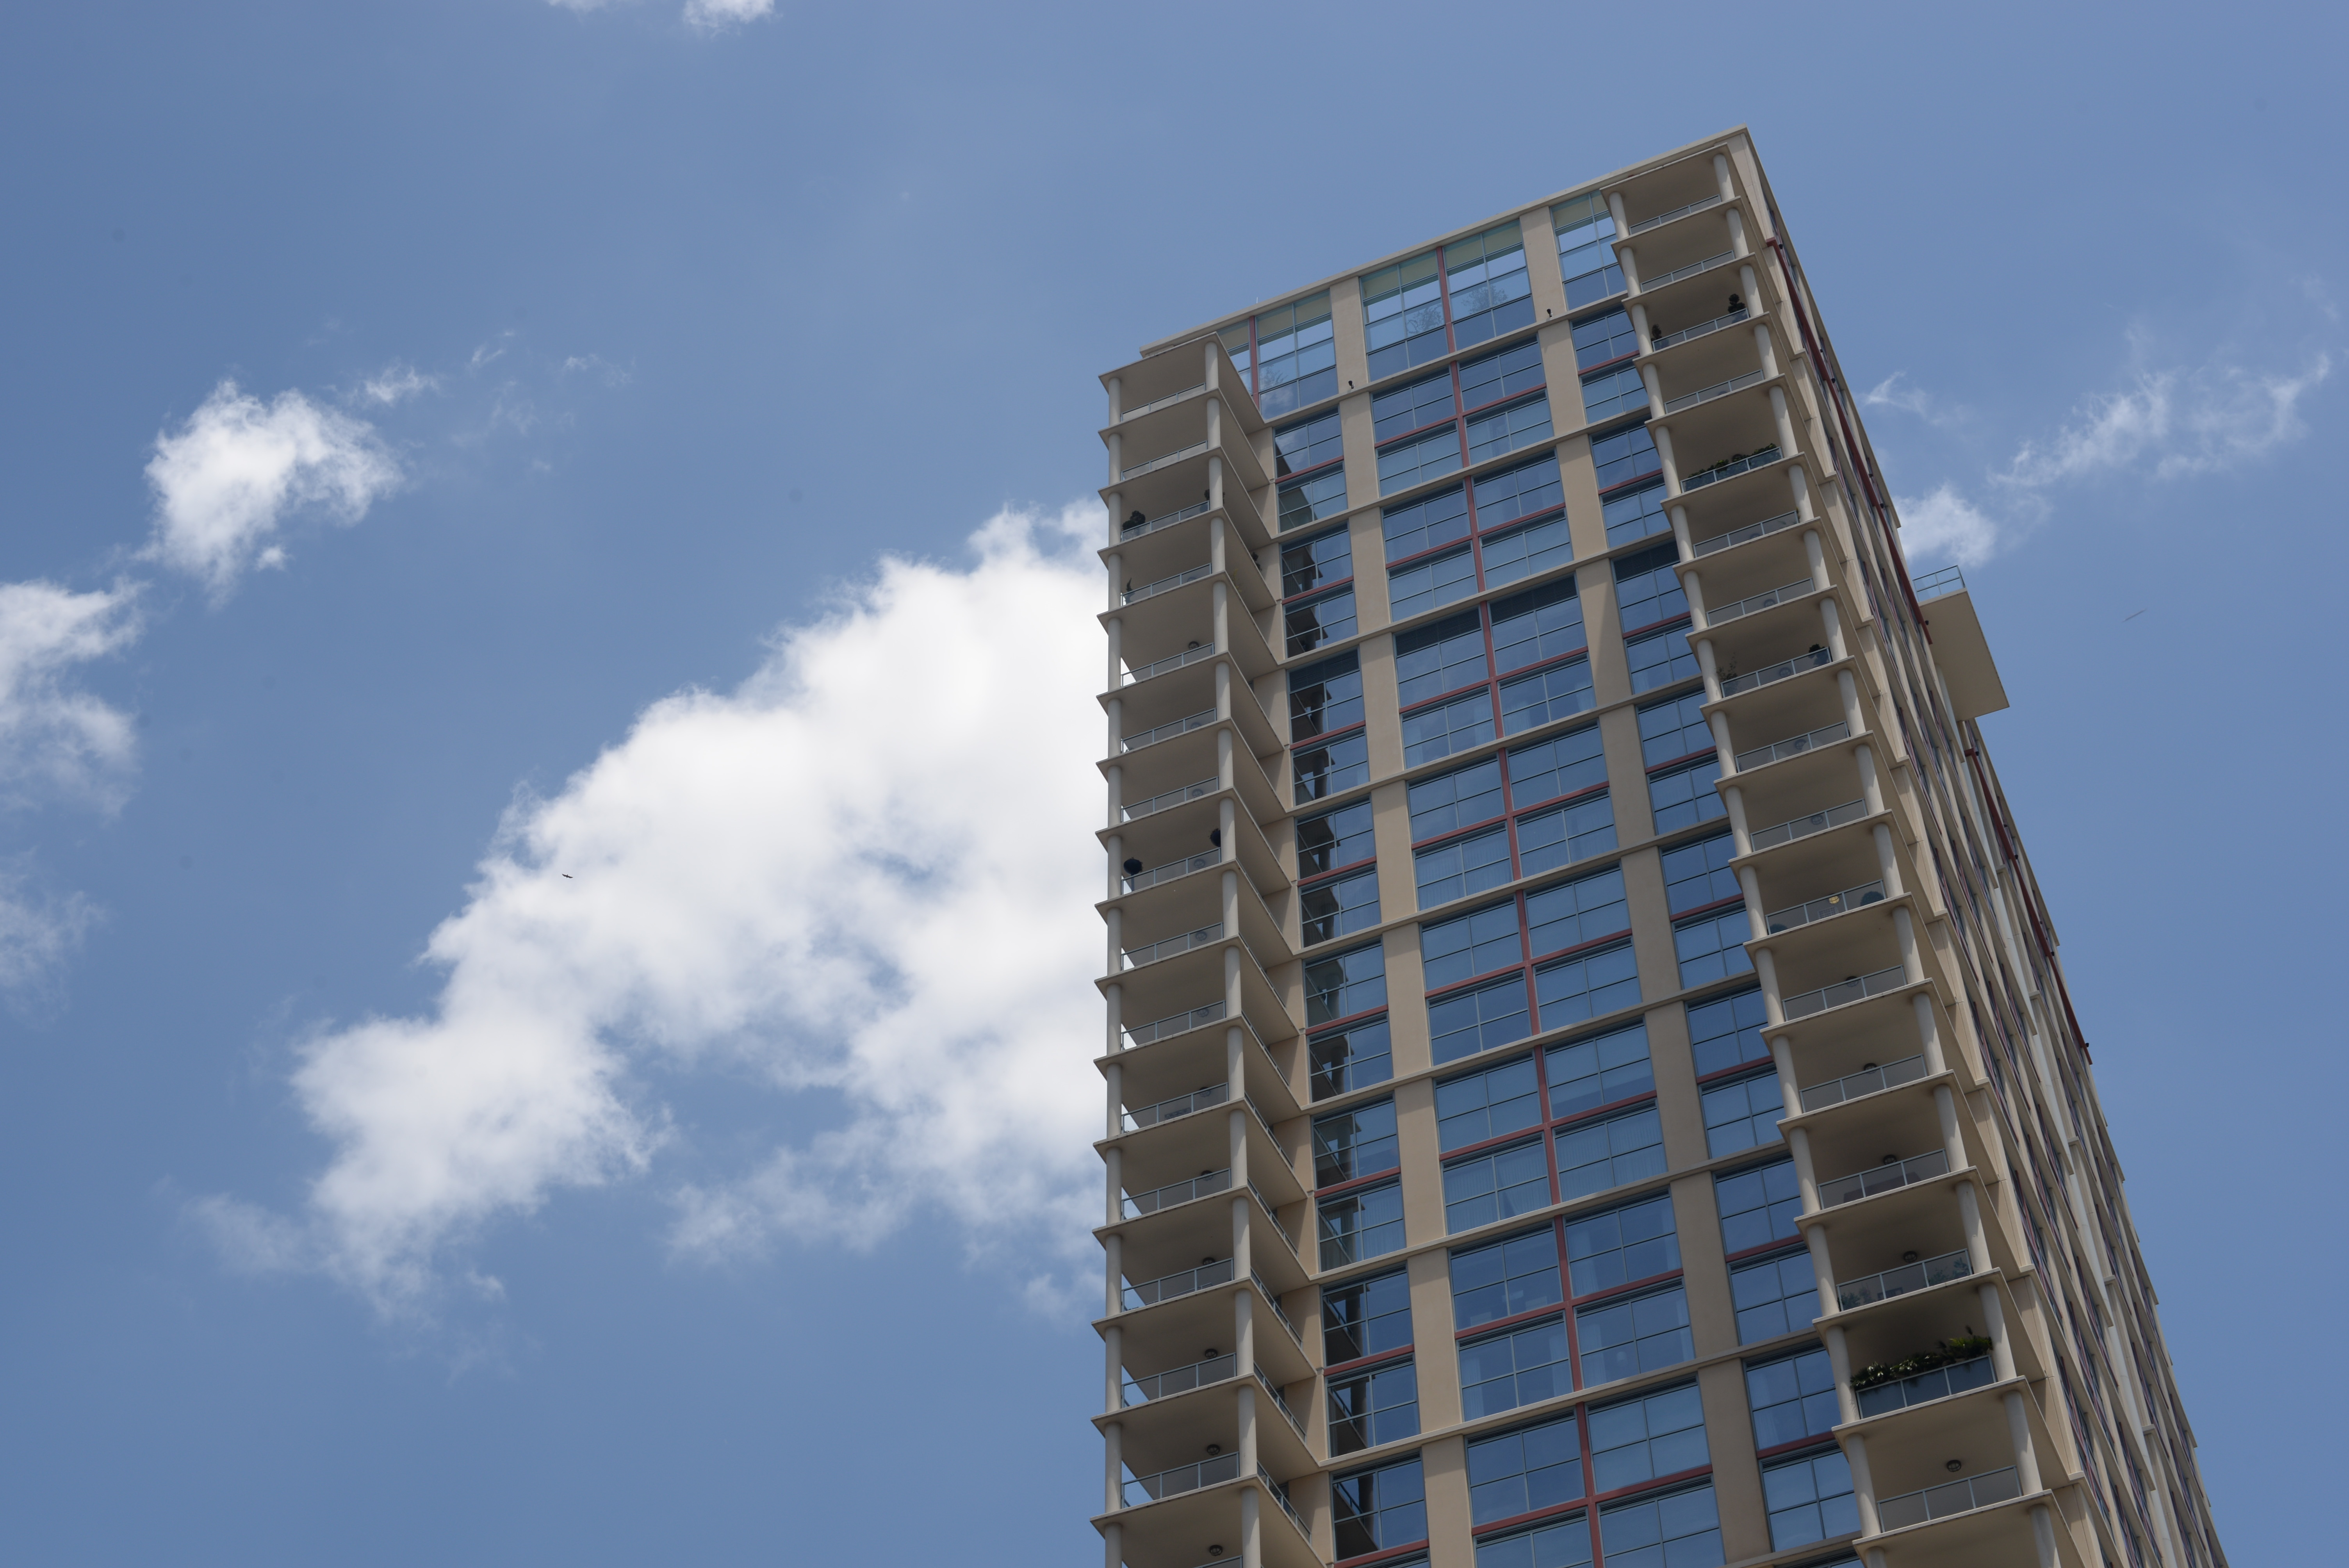 The top of a high-rise apartment building set against a cloudless blue sky.